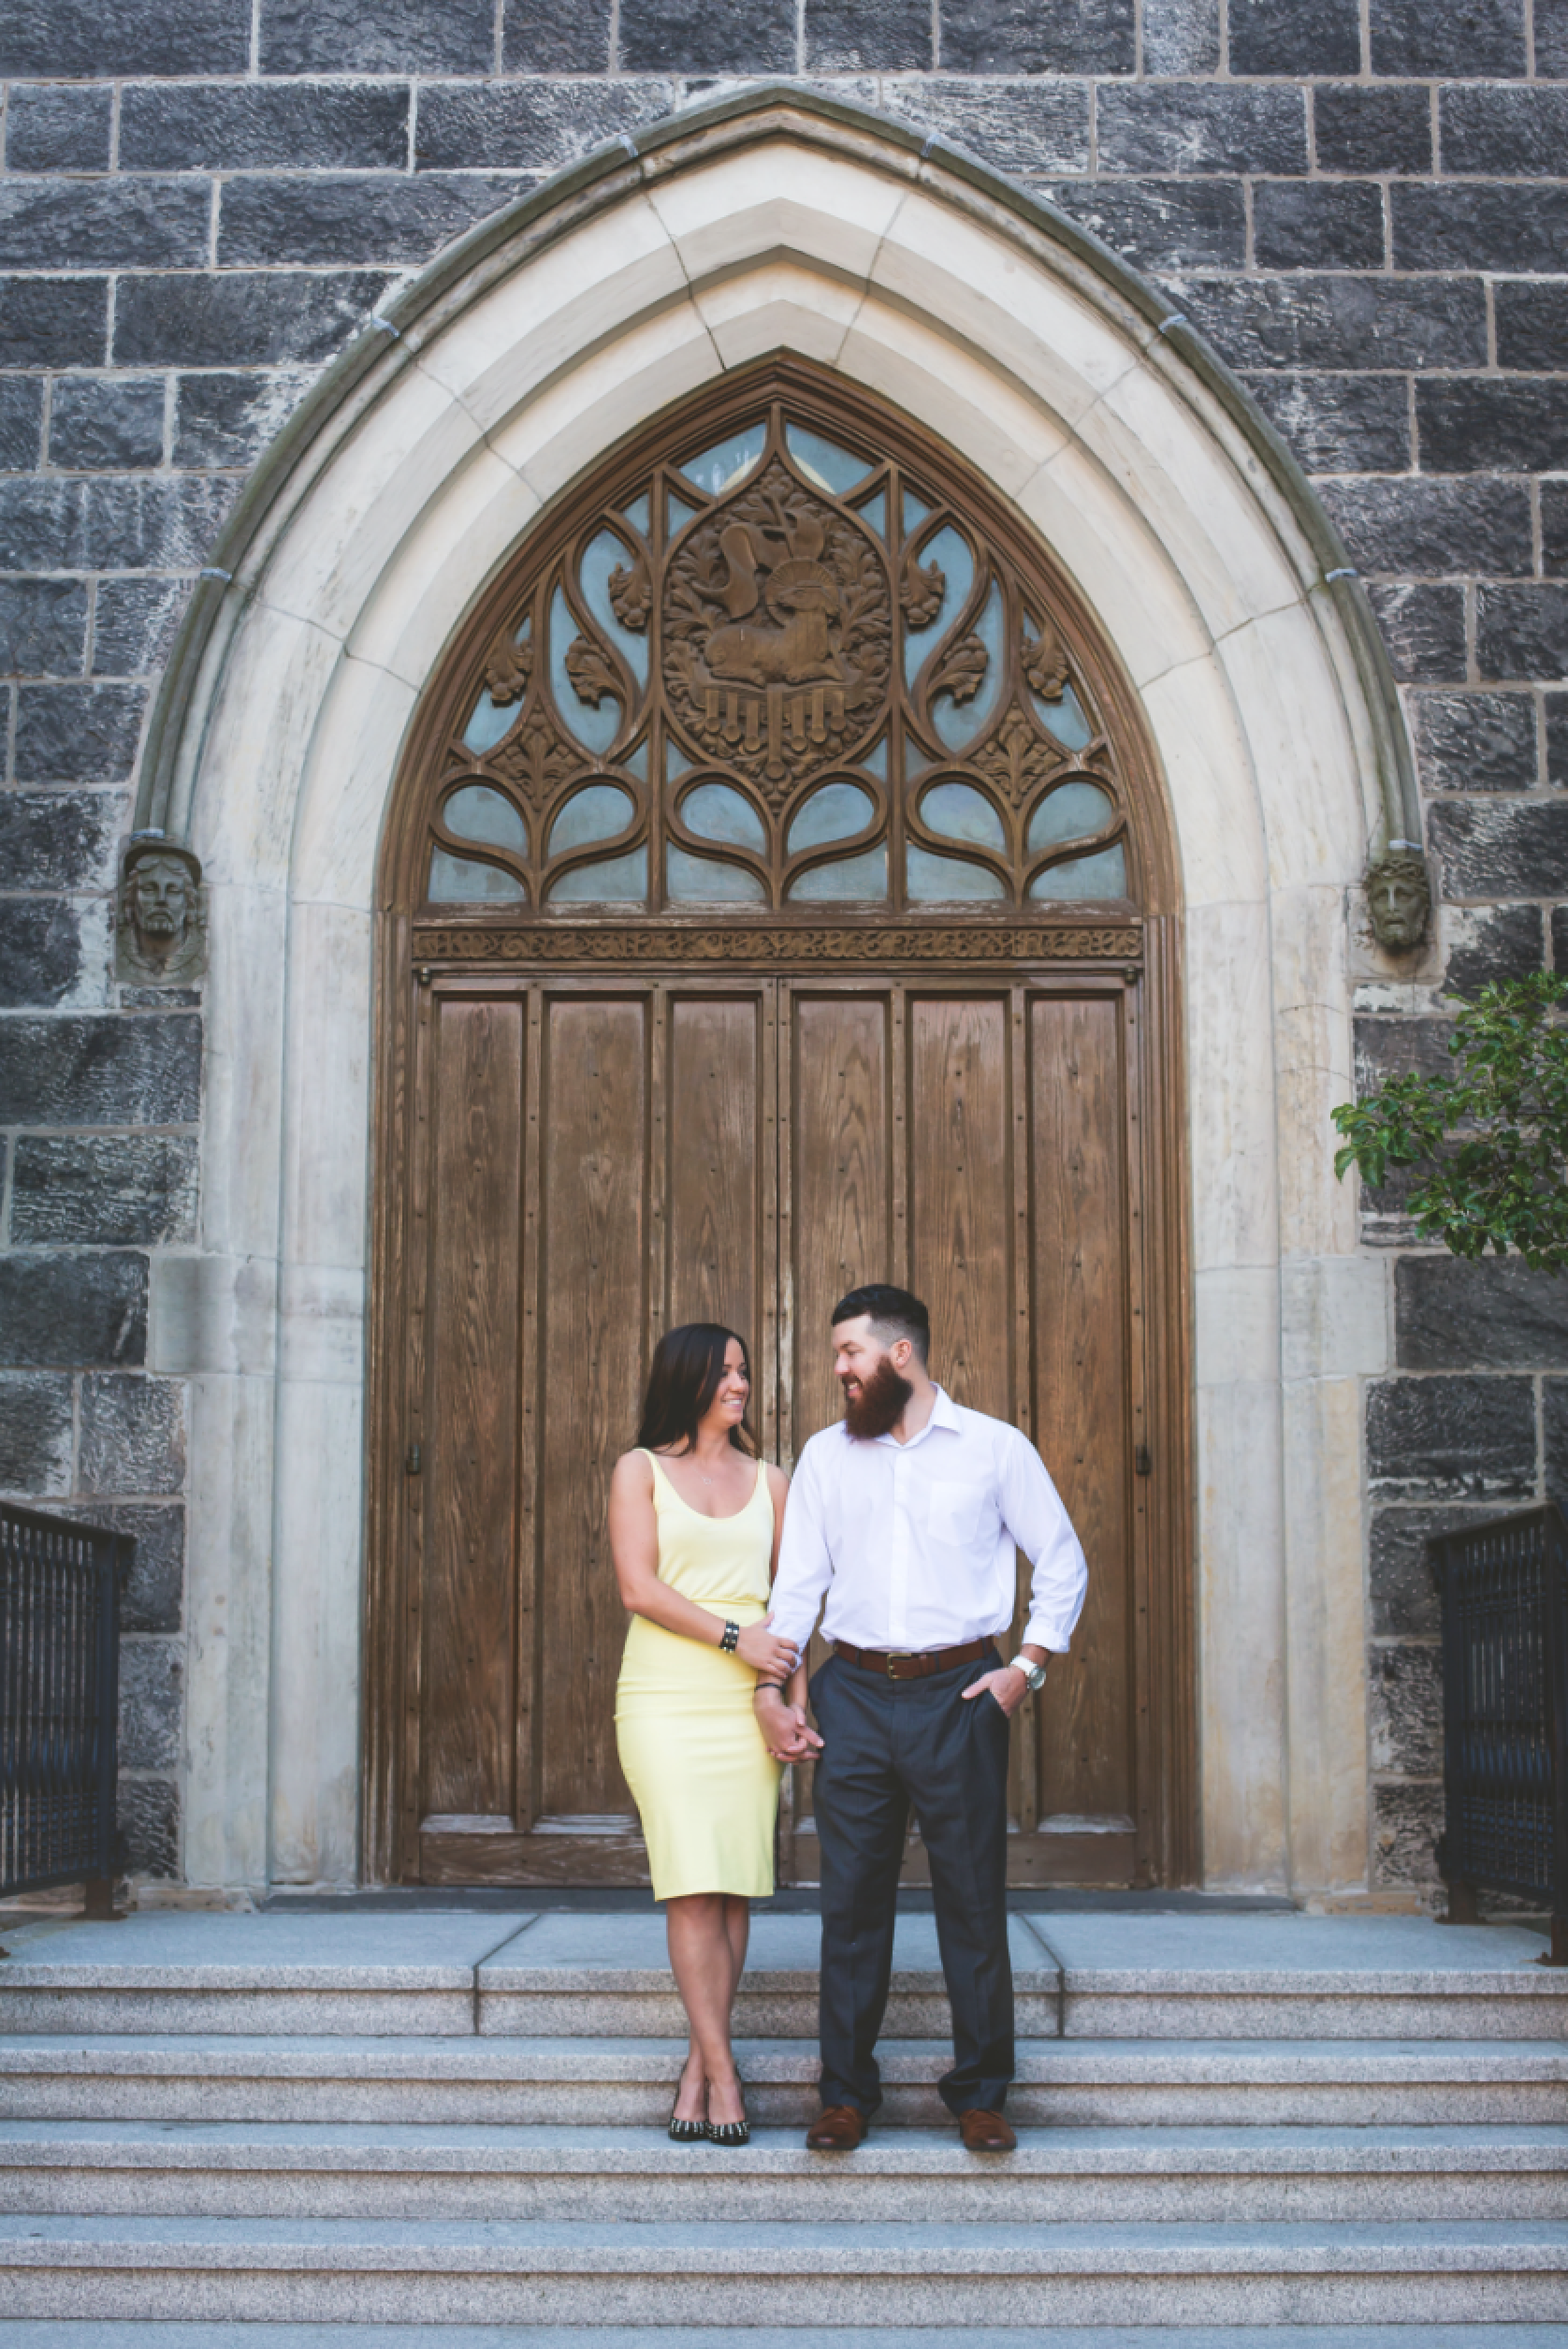 Engagement-Photos-Hamilton-Photographer-James-Street-HamOnt-GTA-Toronto-Niagara-Urban-Engaged-Moments-by-Lauren-Photo-2.png